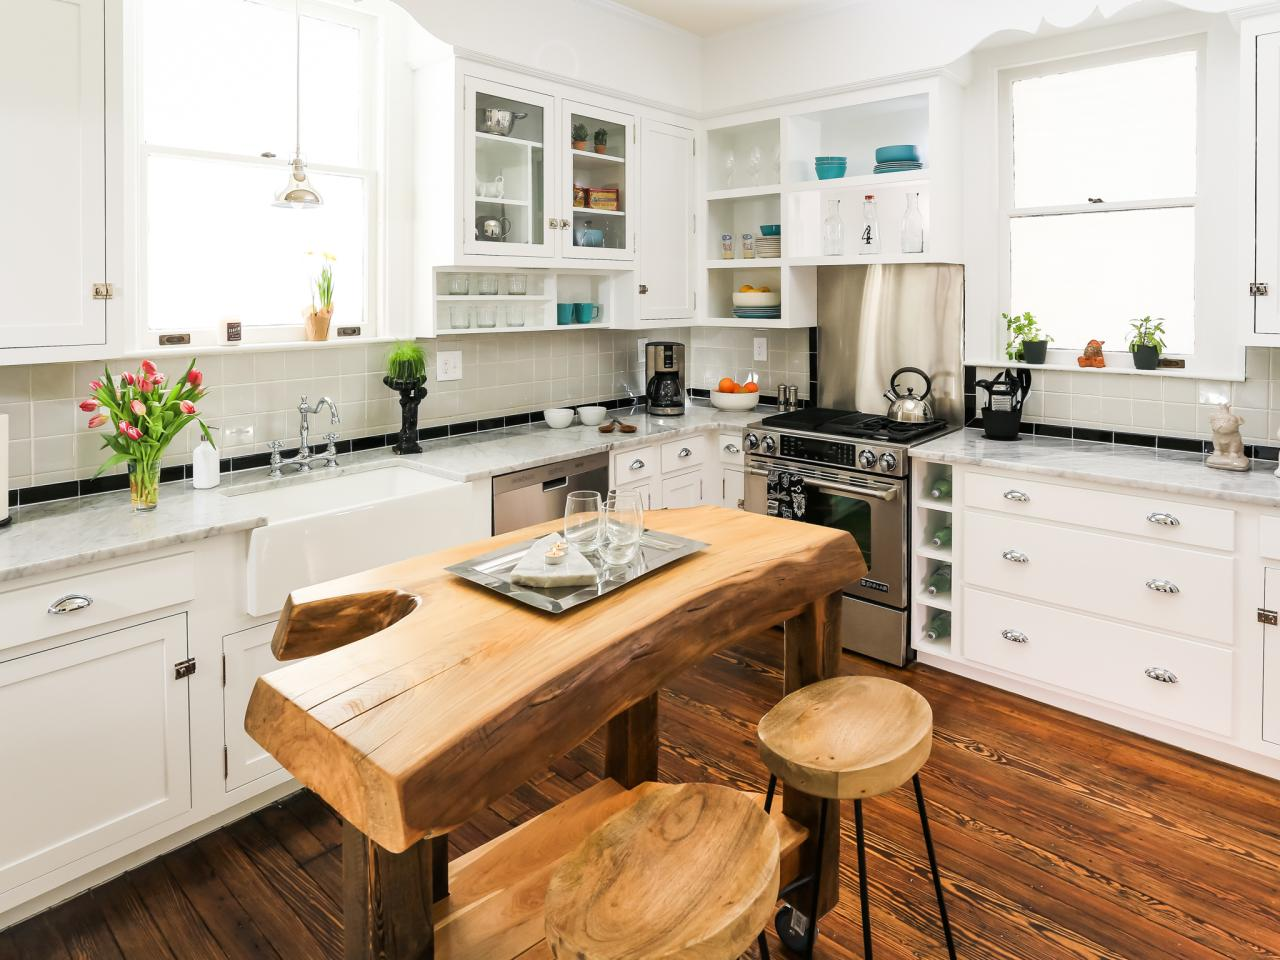 superior Nicole Curtis Kitchen Design #6: KITCHEN: BEFORE